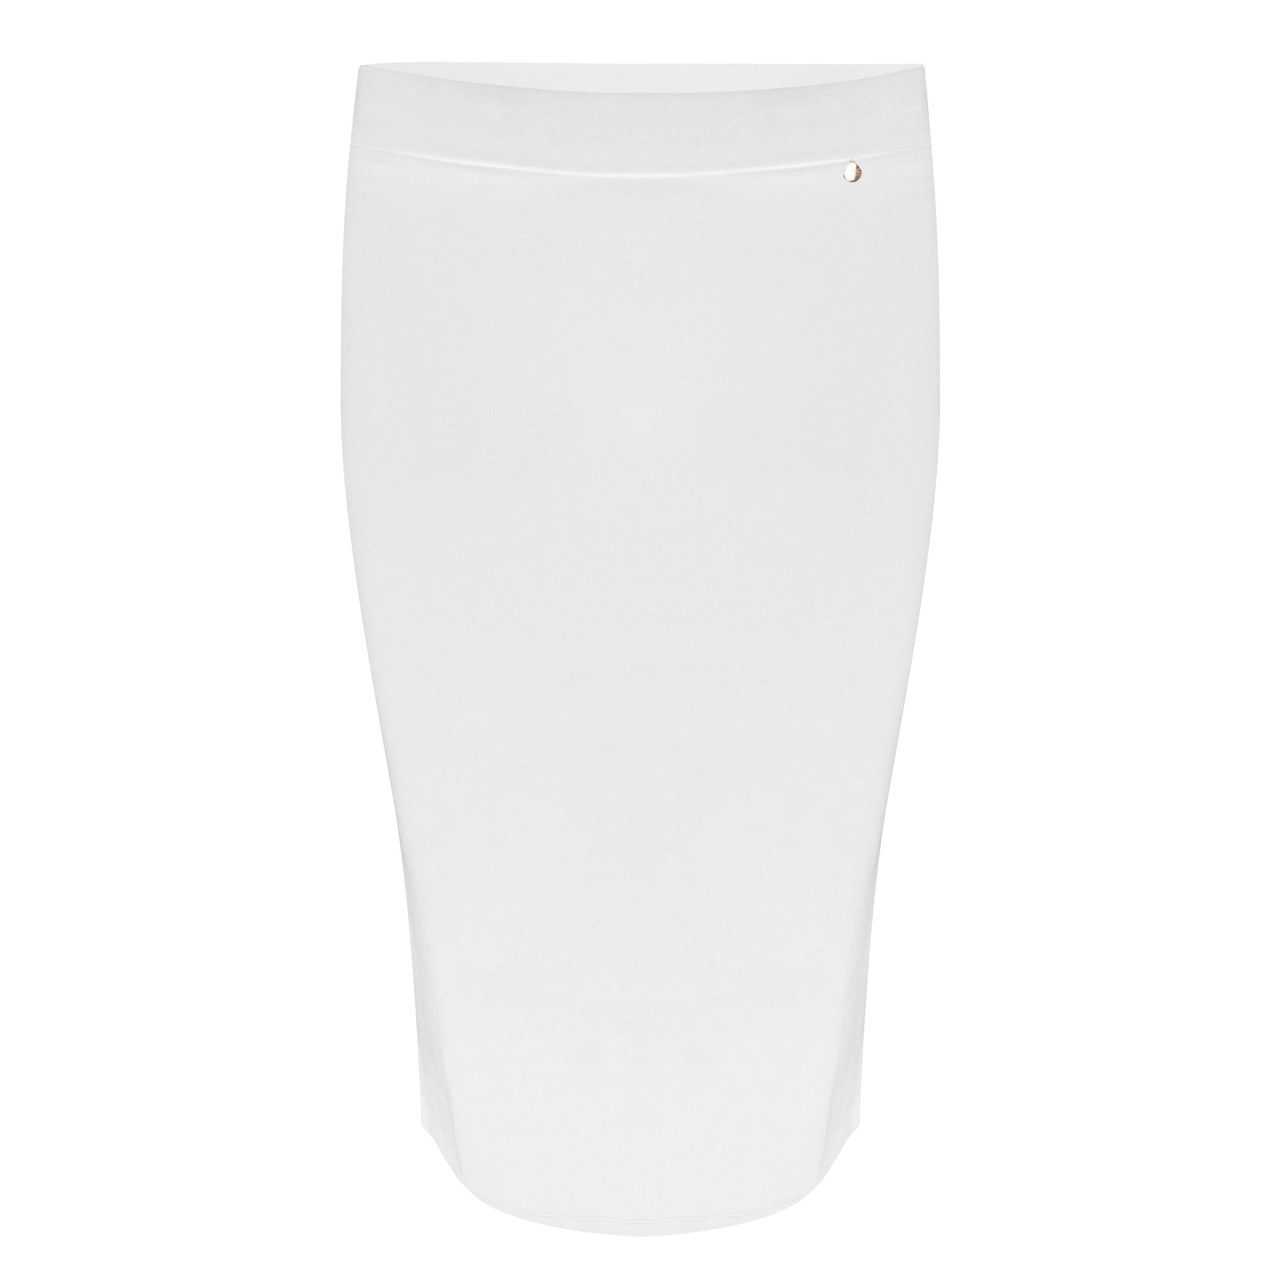 Chic by Lirette - pencil skirt white